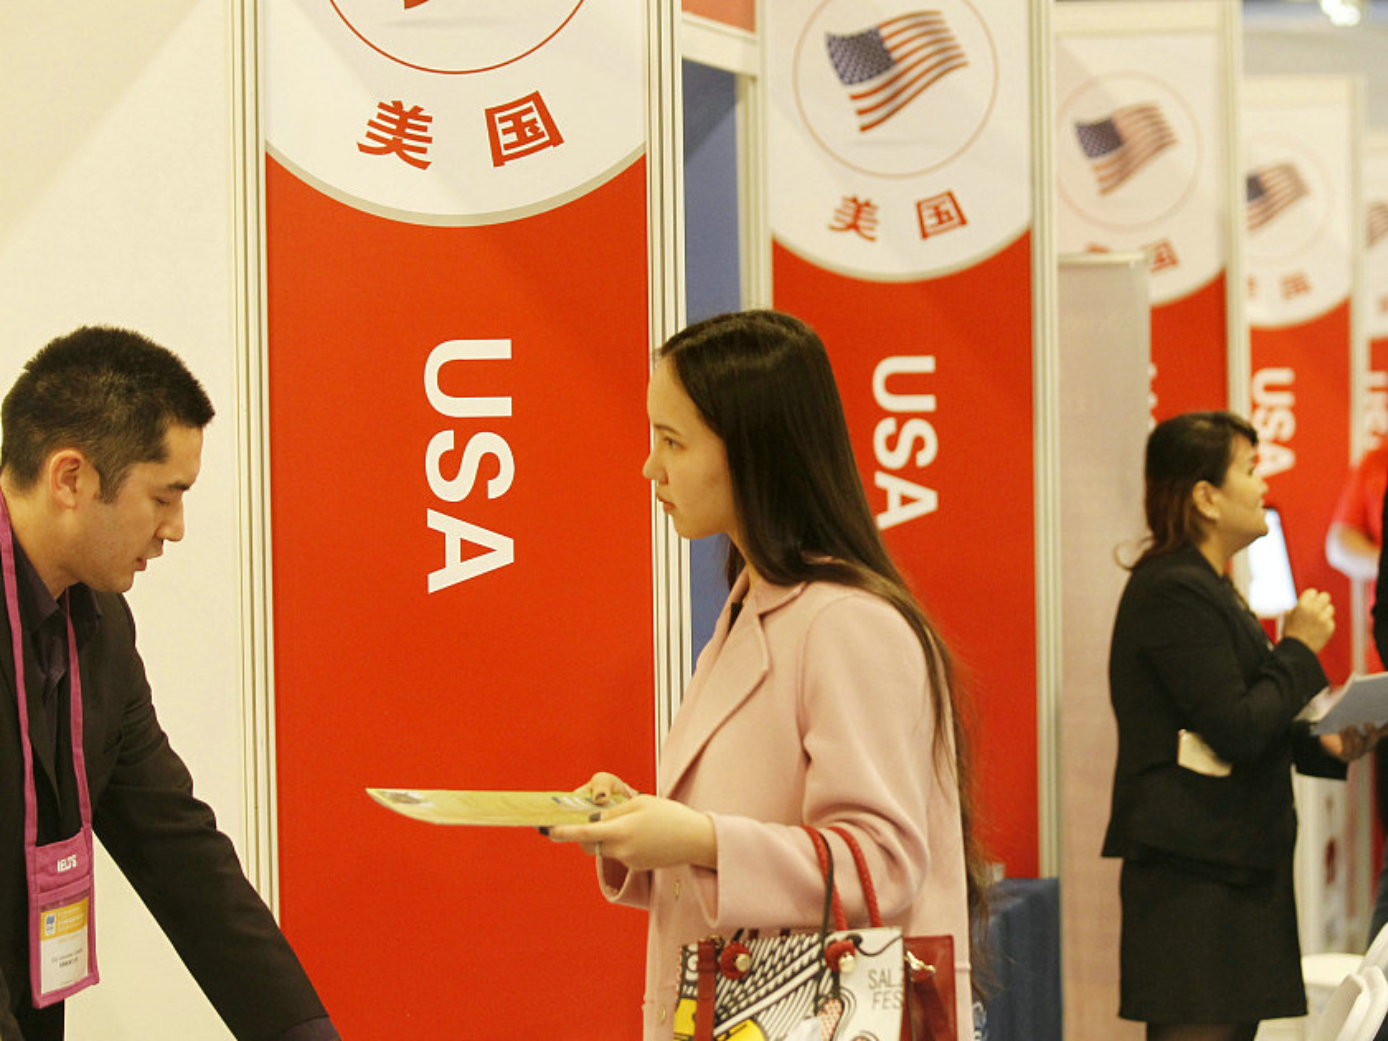 China hopes the US will turn words into actions on welcoming China's students